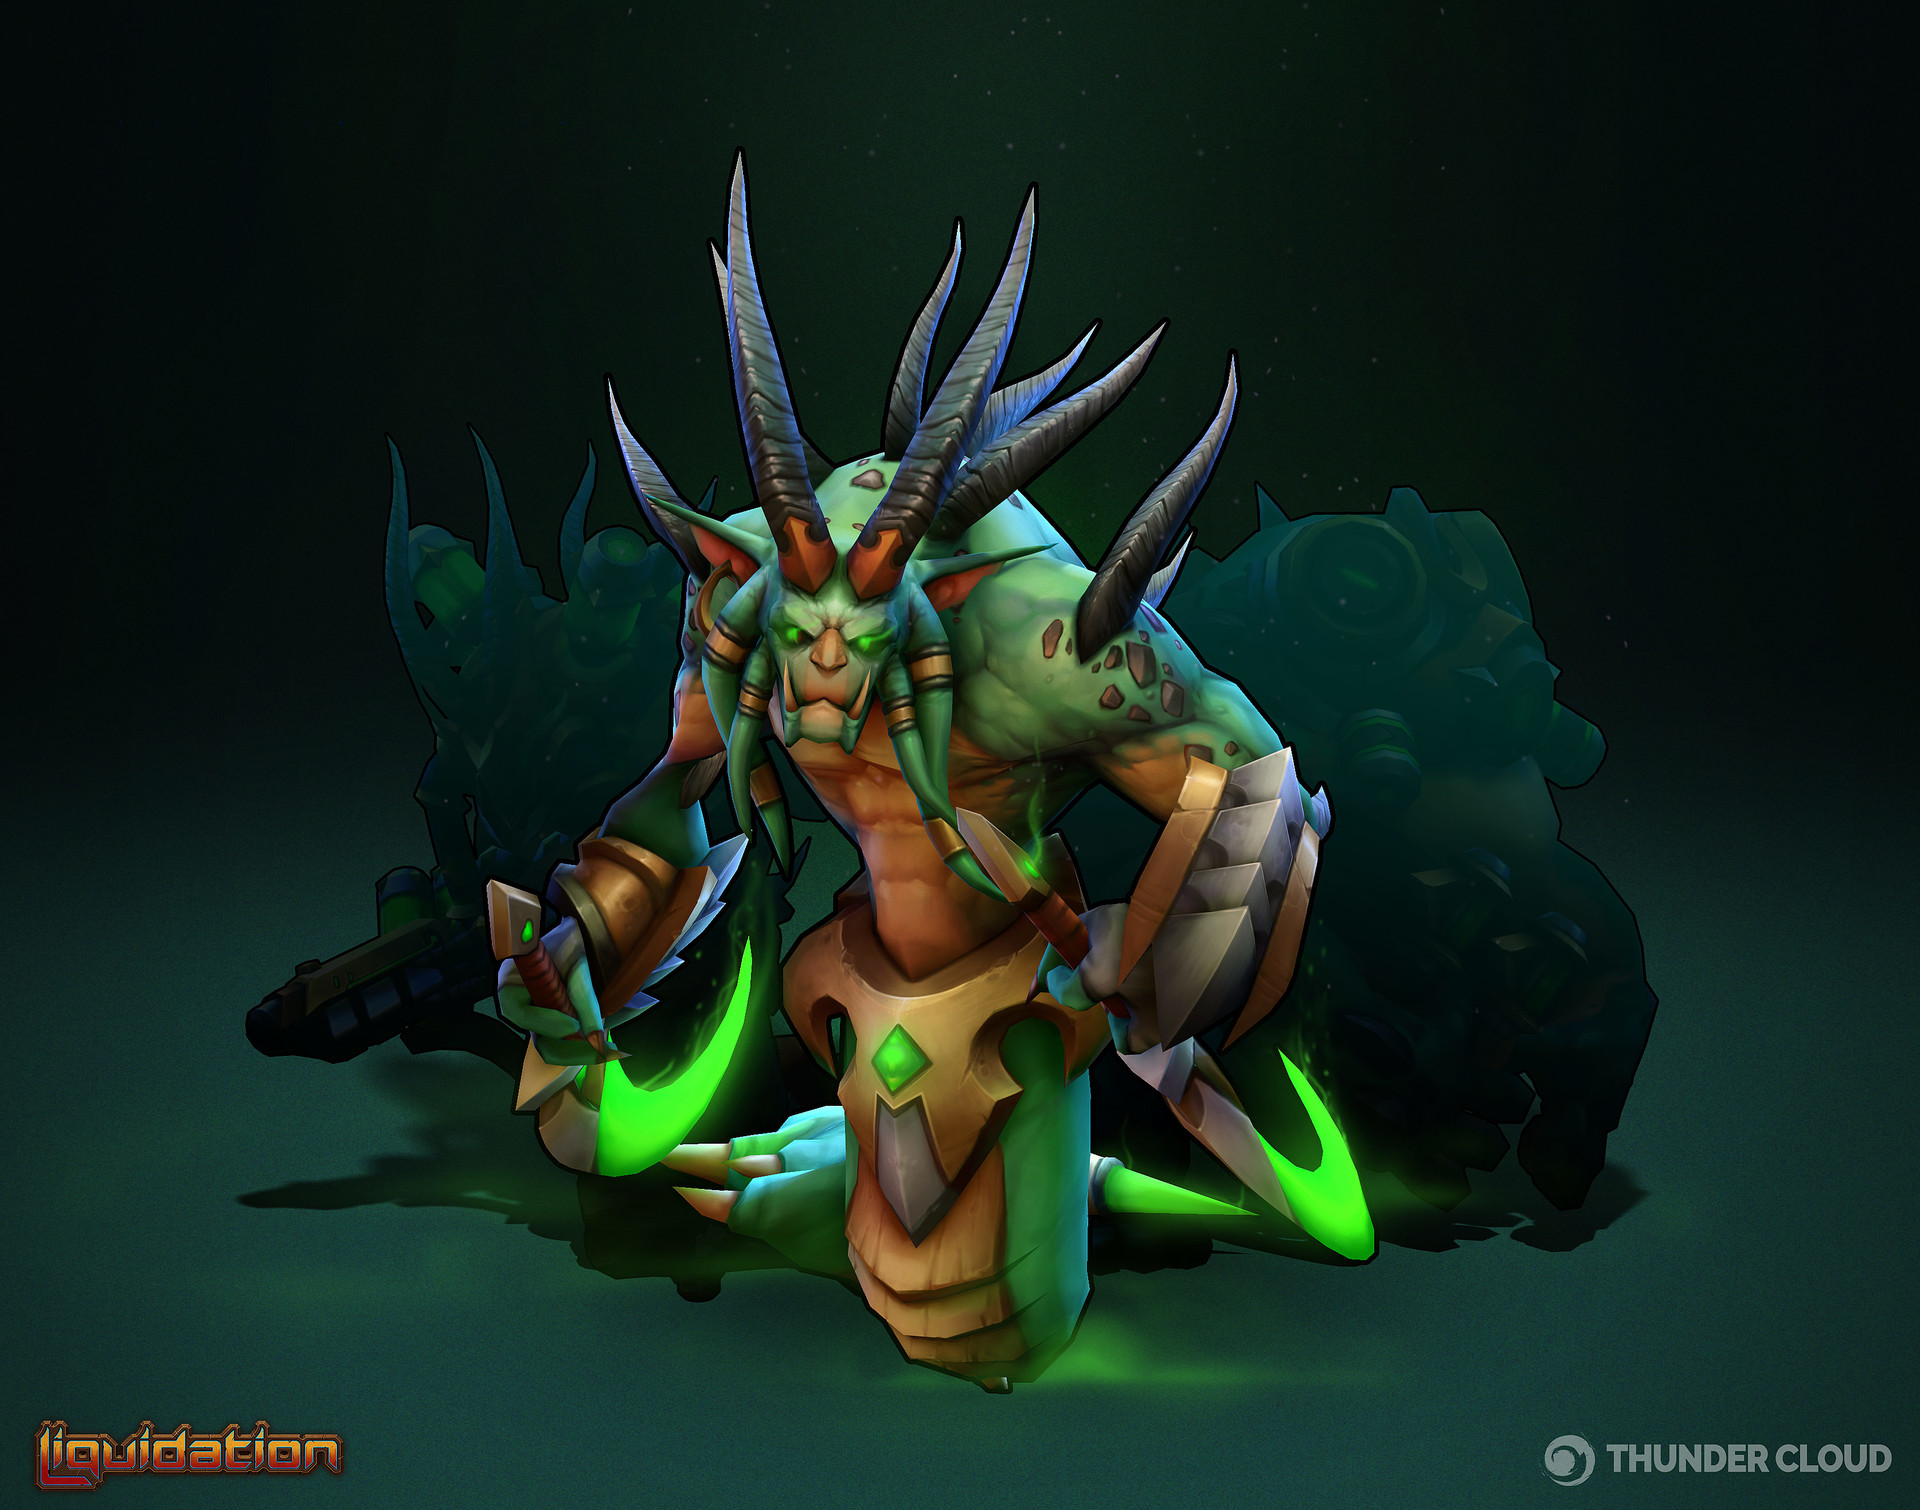 Thunder cloud thescourge artstataion